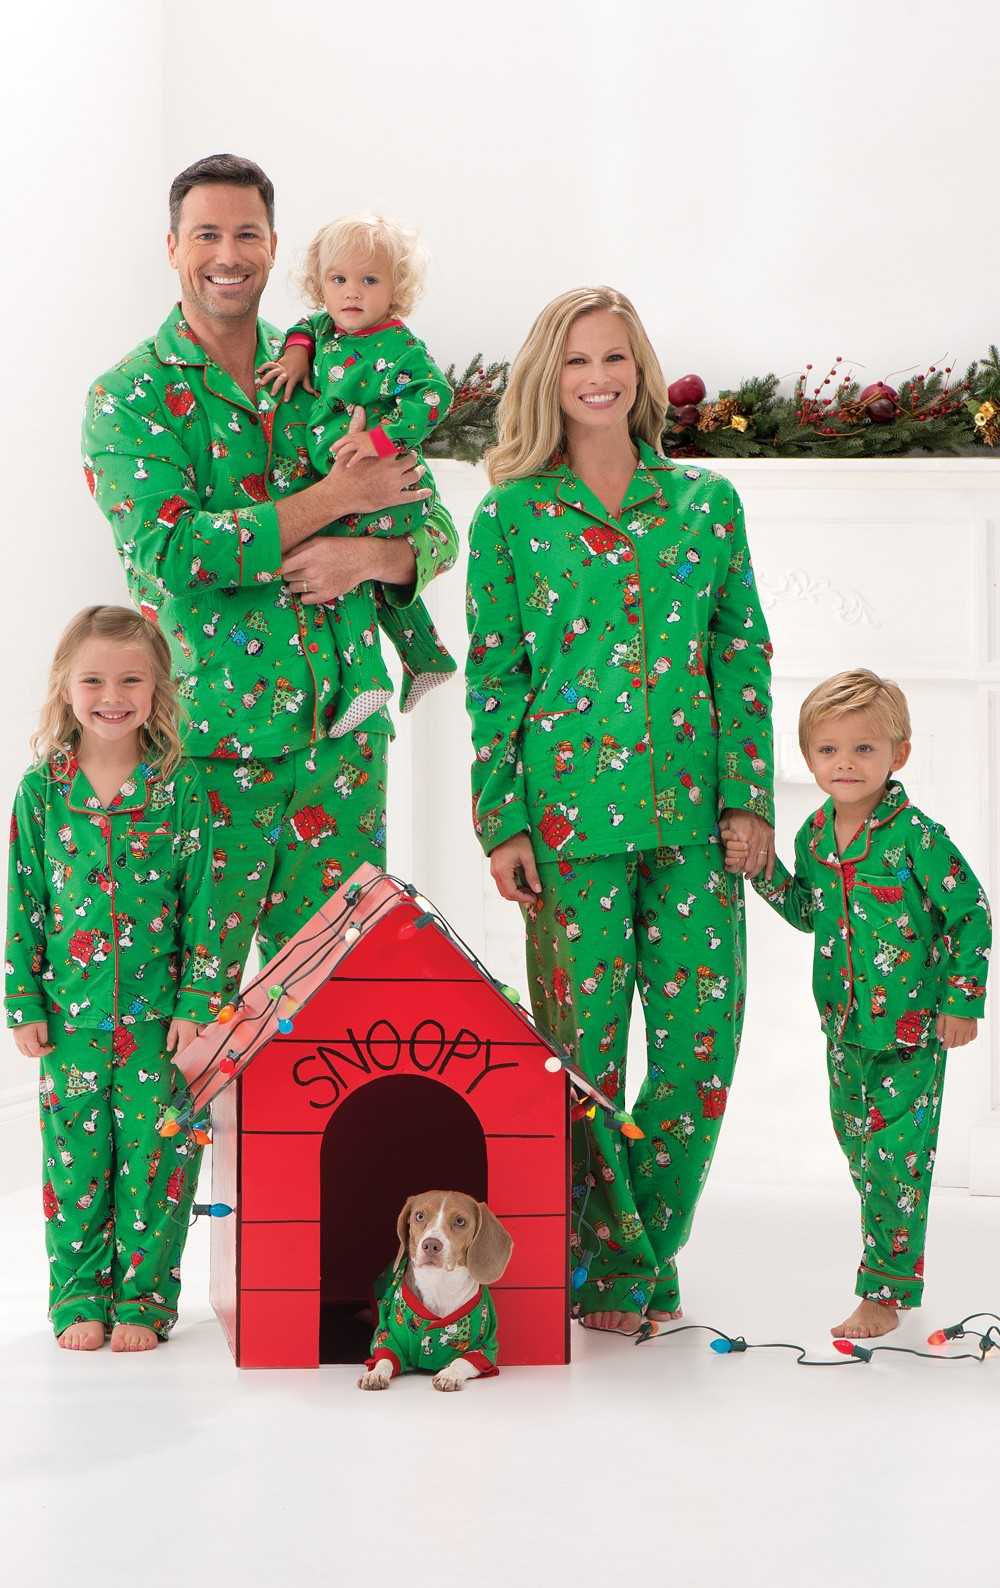 Charlie Brown Christmas Matching Family Pajamas from Pajamagram